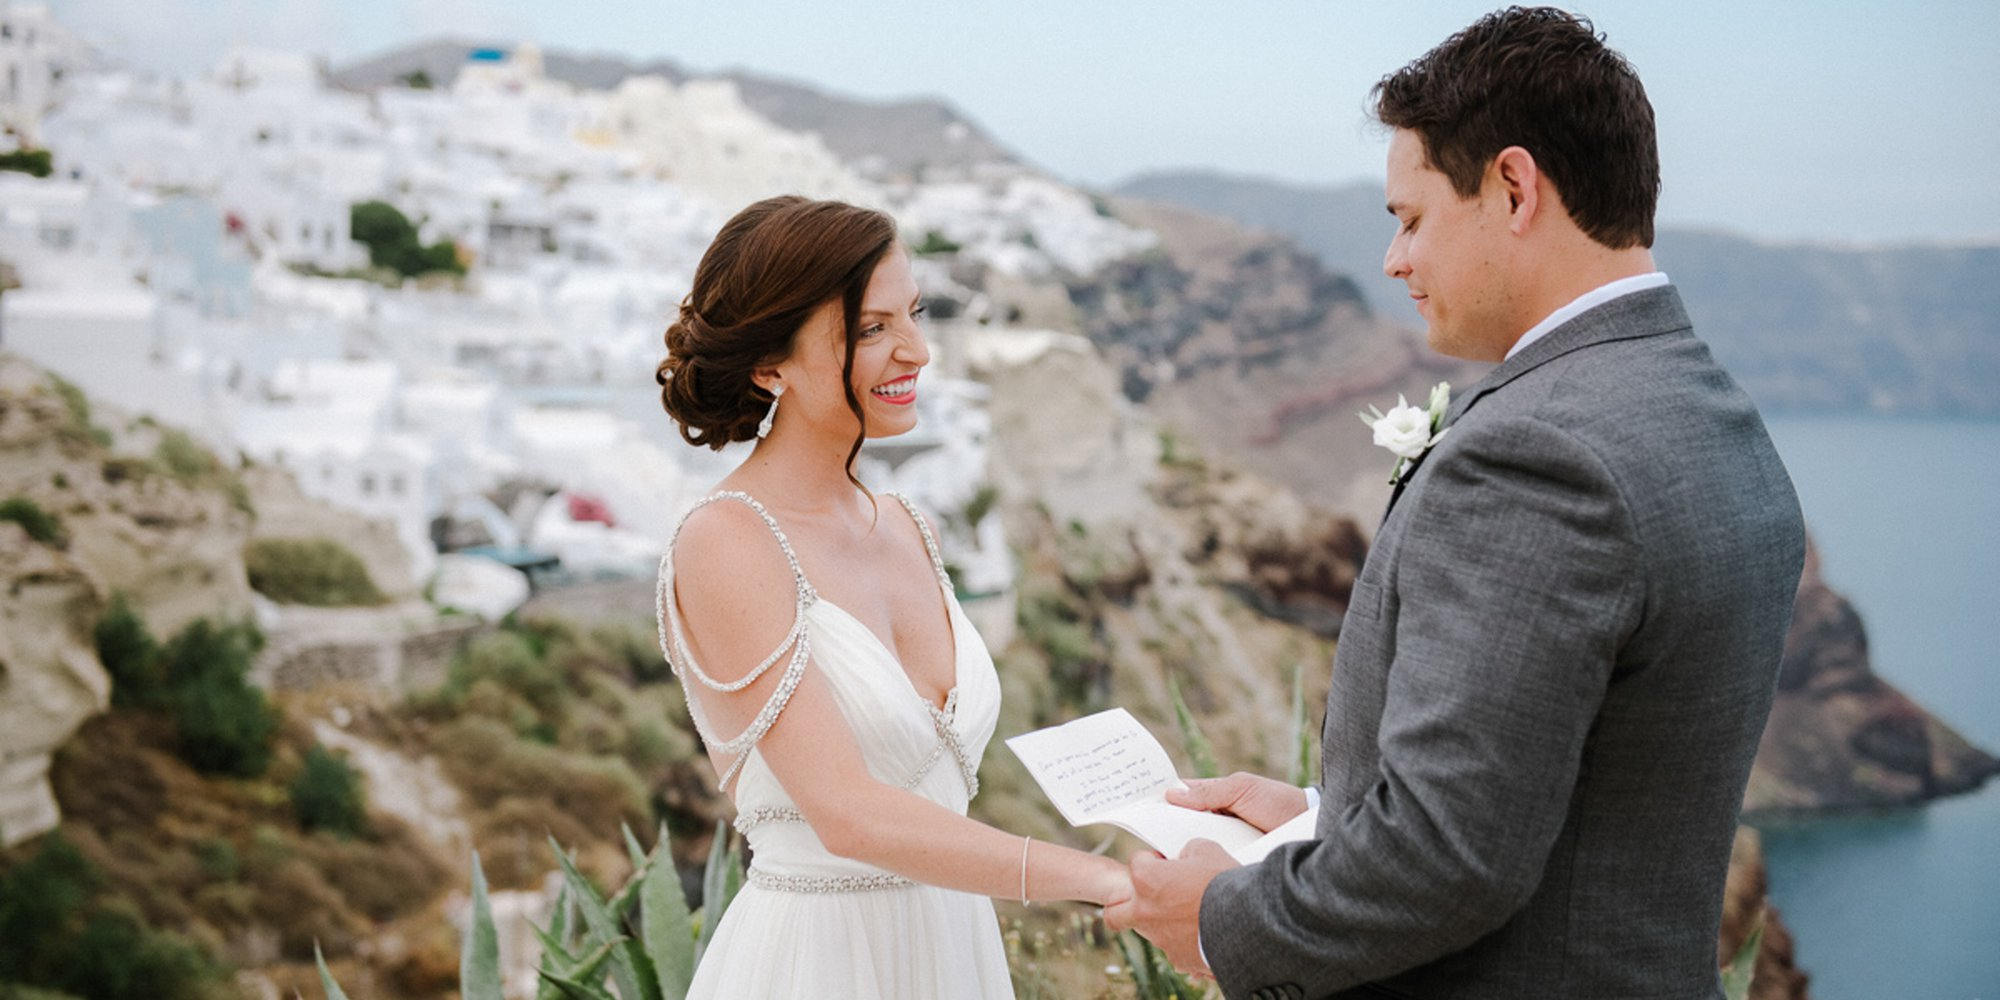 Shauna Amp Steve S Wedding At Andronis Luxury Suites In Oia